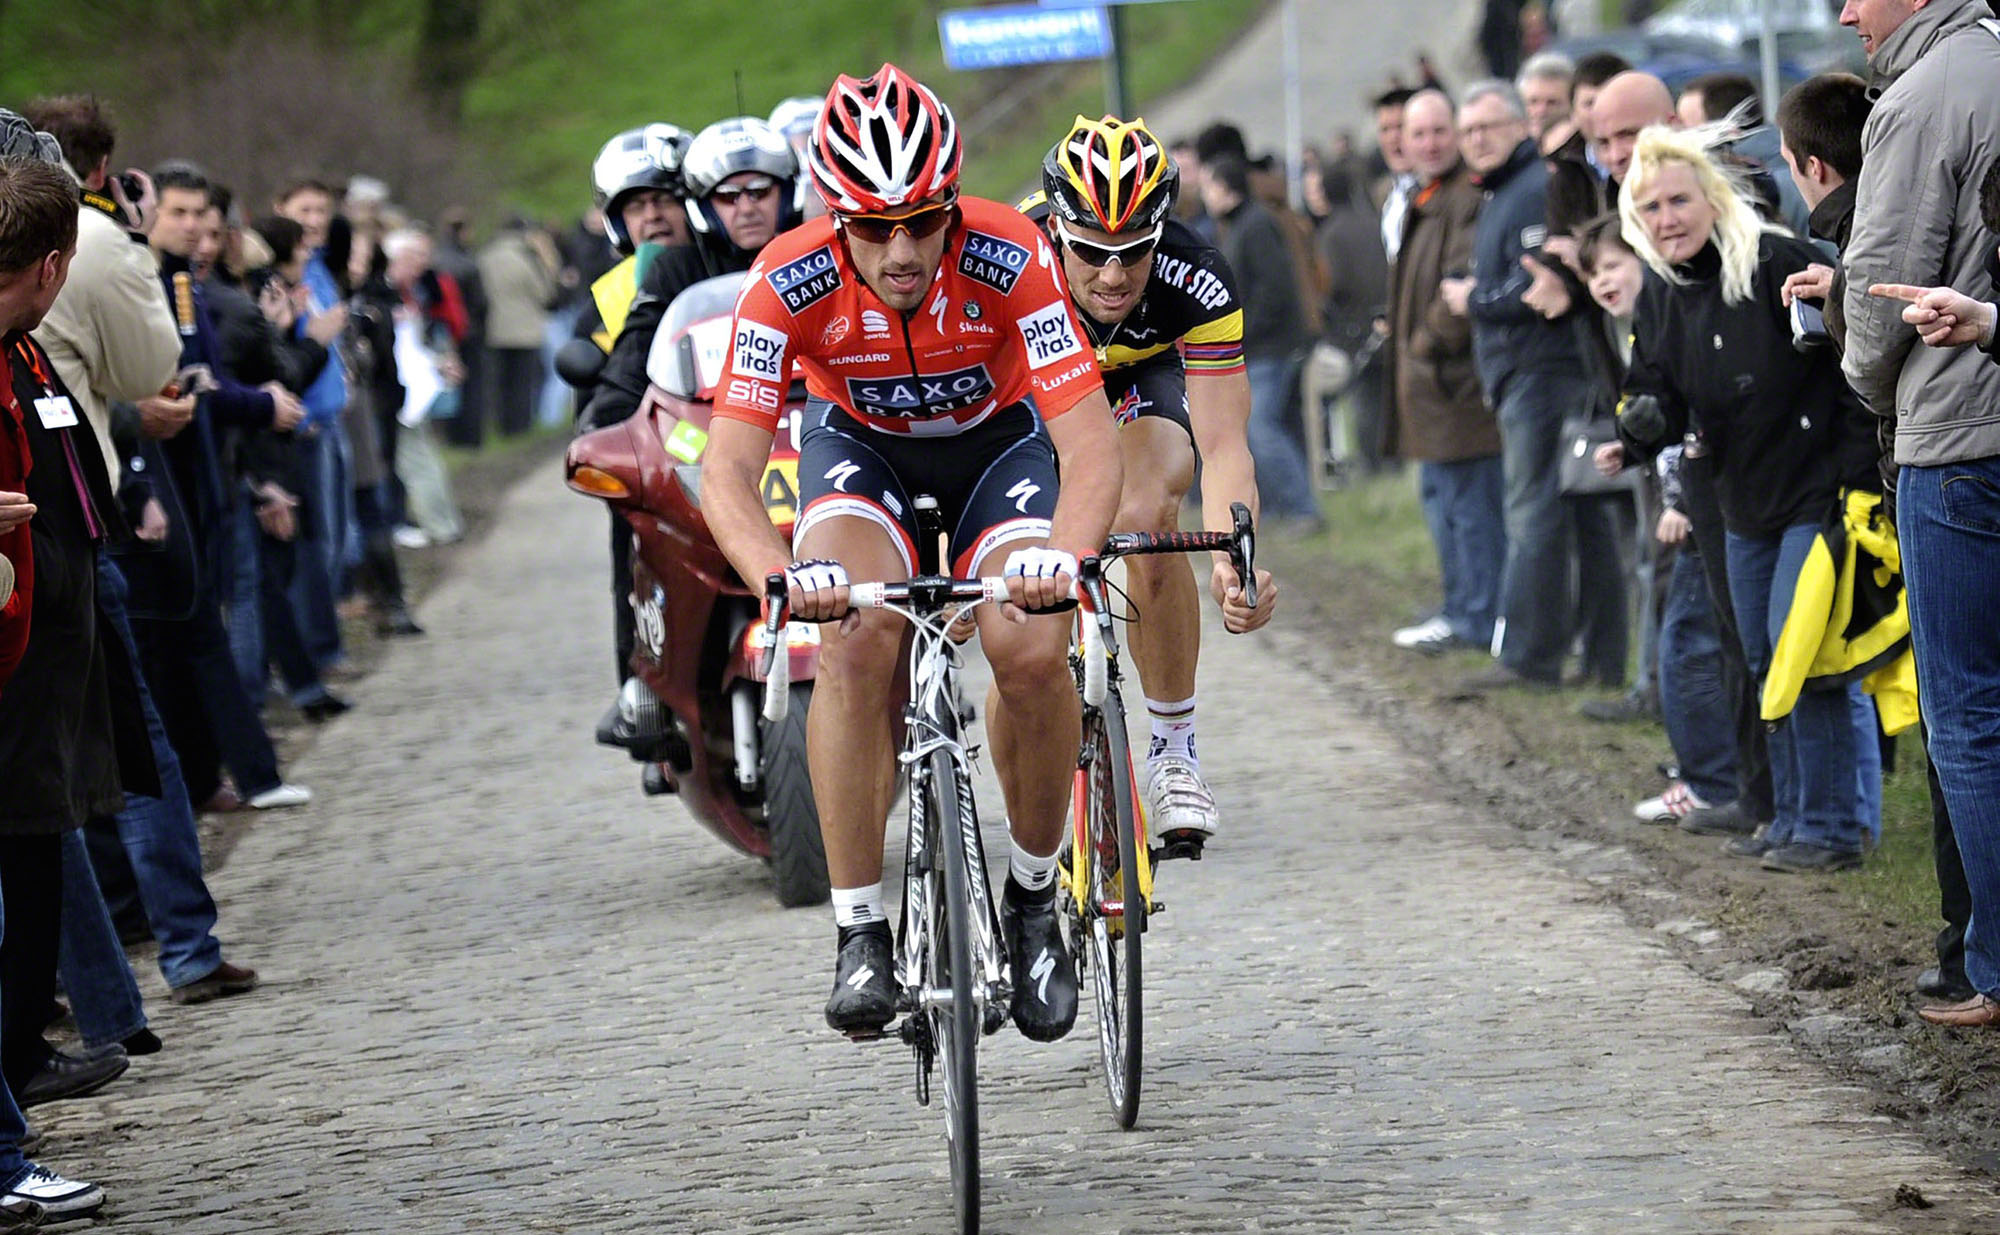 Cancellara powers to the front - 2010 RVV